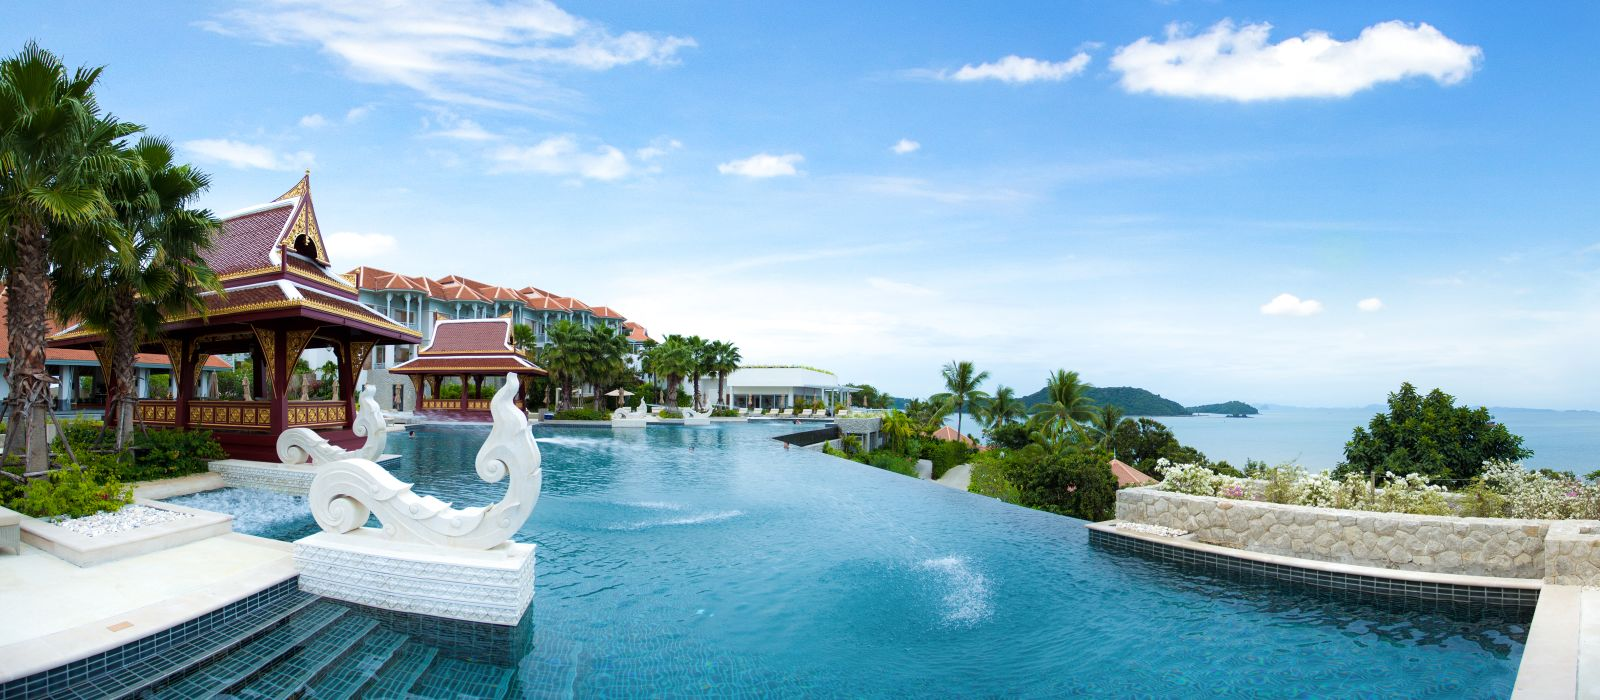 Hotel Amatara Wellness Resort Thailand